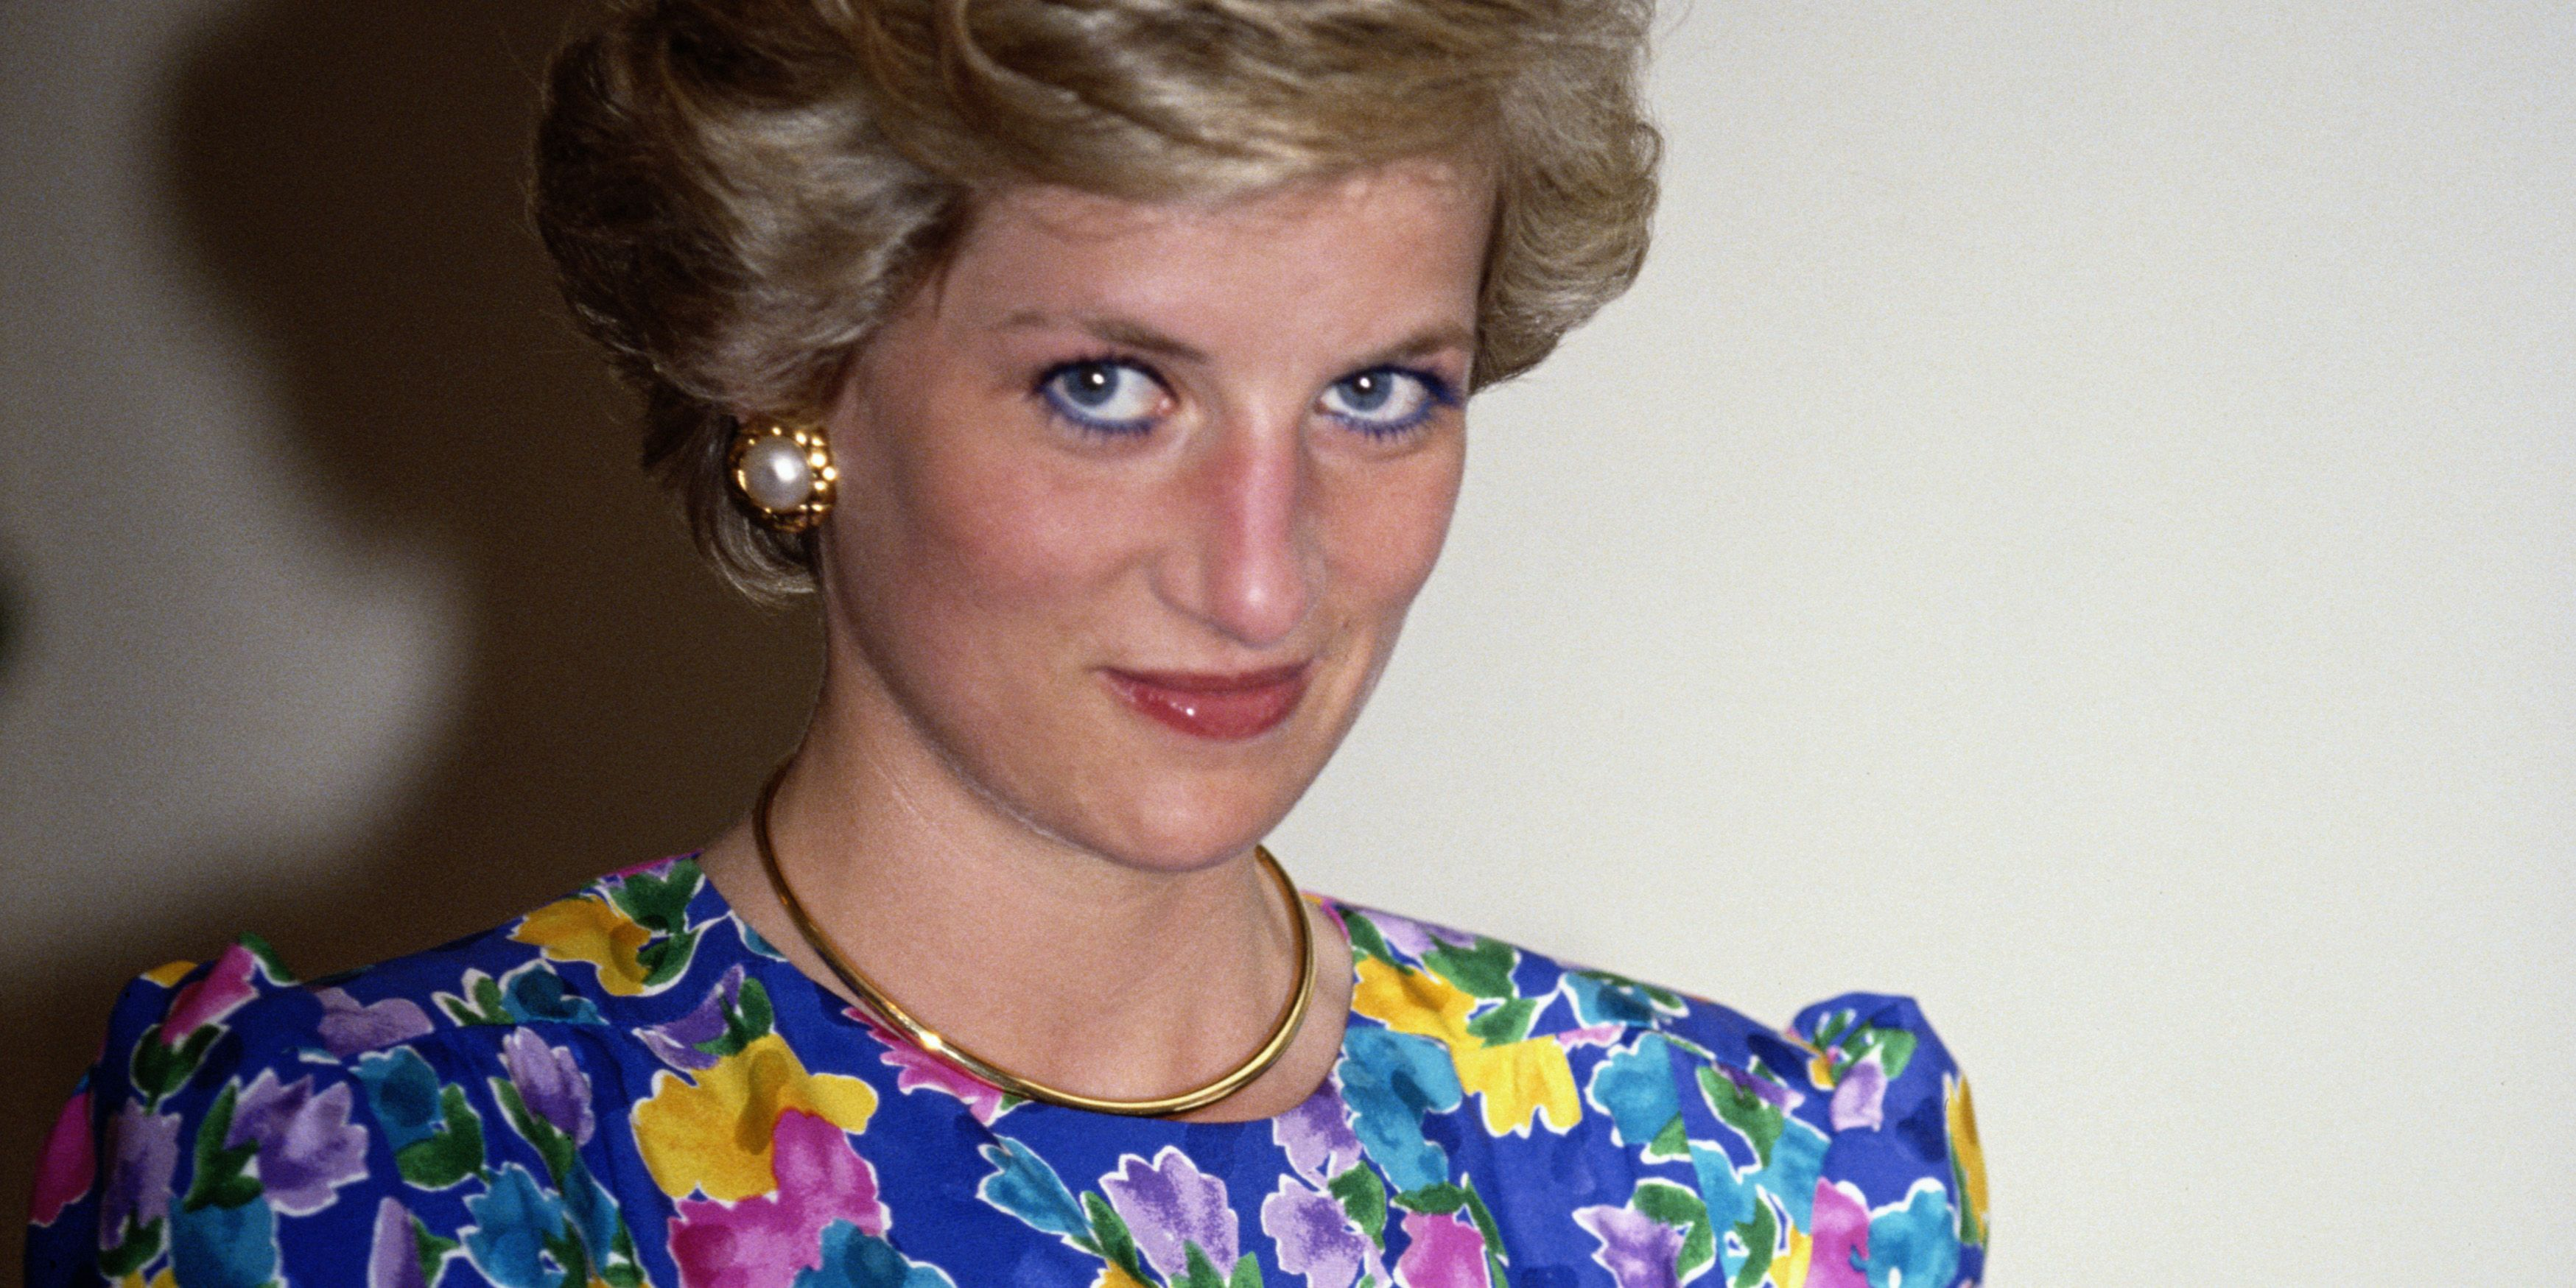 7 Things You Didn't Know About Princess Diana, According to Her Biographer